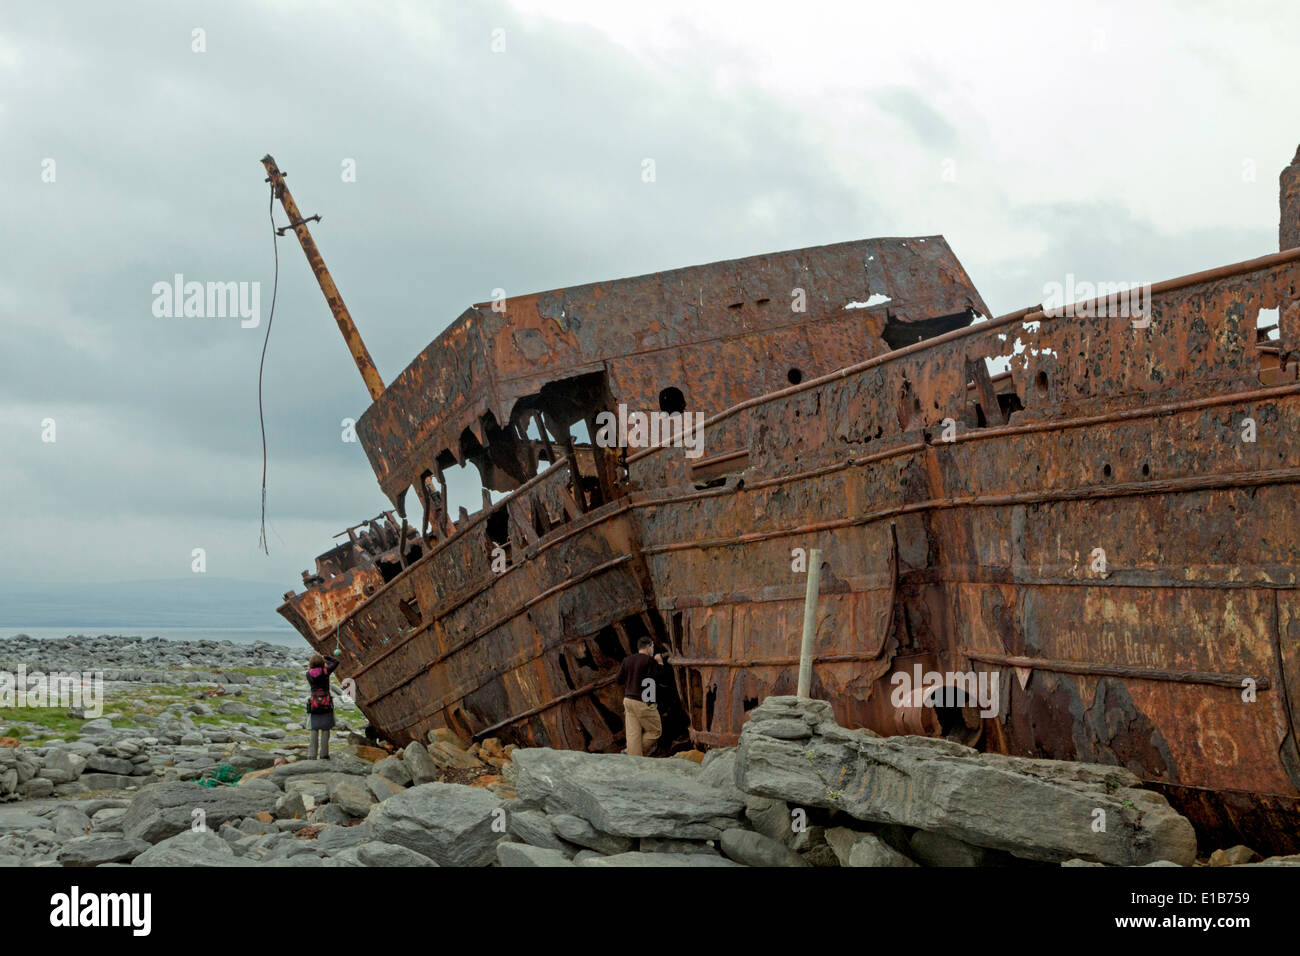 The rusty shipwreck of MV Plassey  on Finnis Rock, Inis Oirr or Inisheer, one of the three Aran Islands, Republic of Ireland. Stock Photo